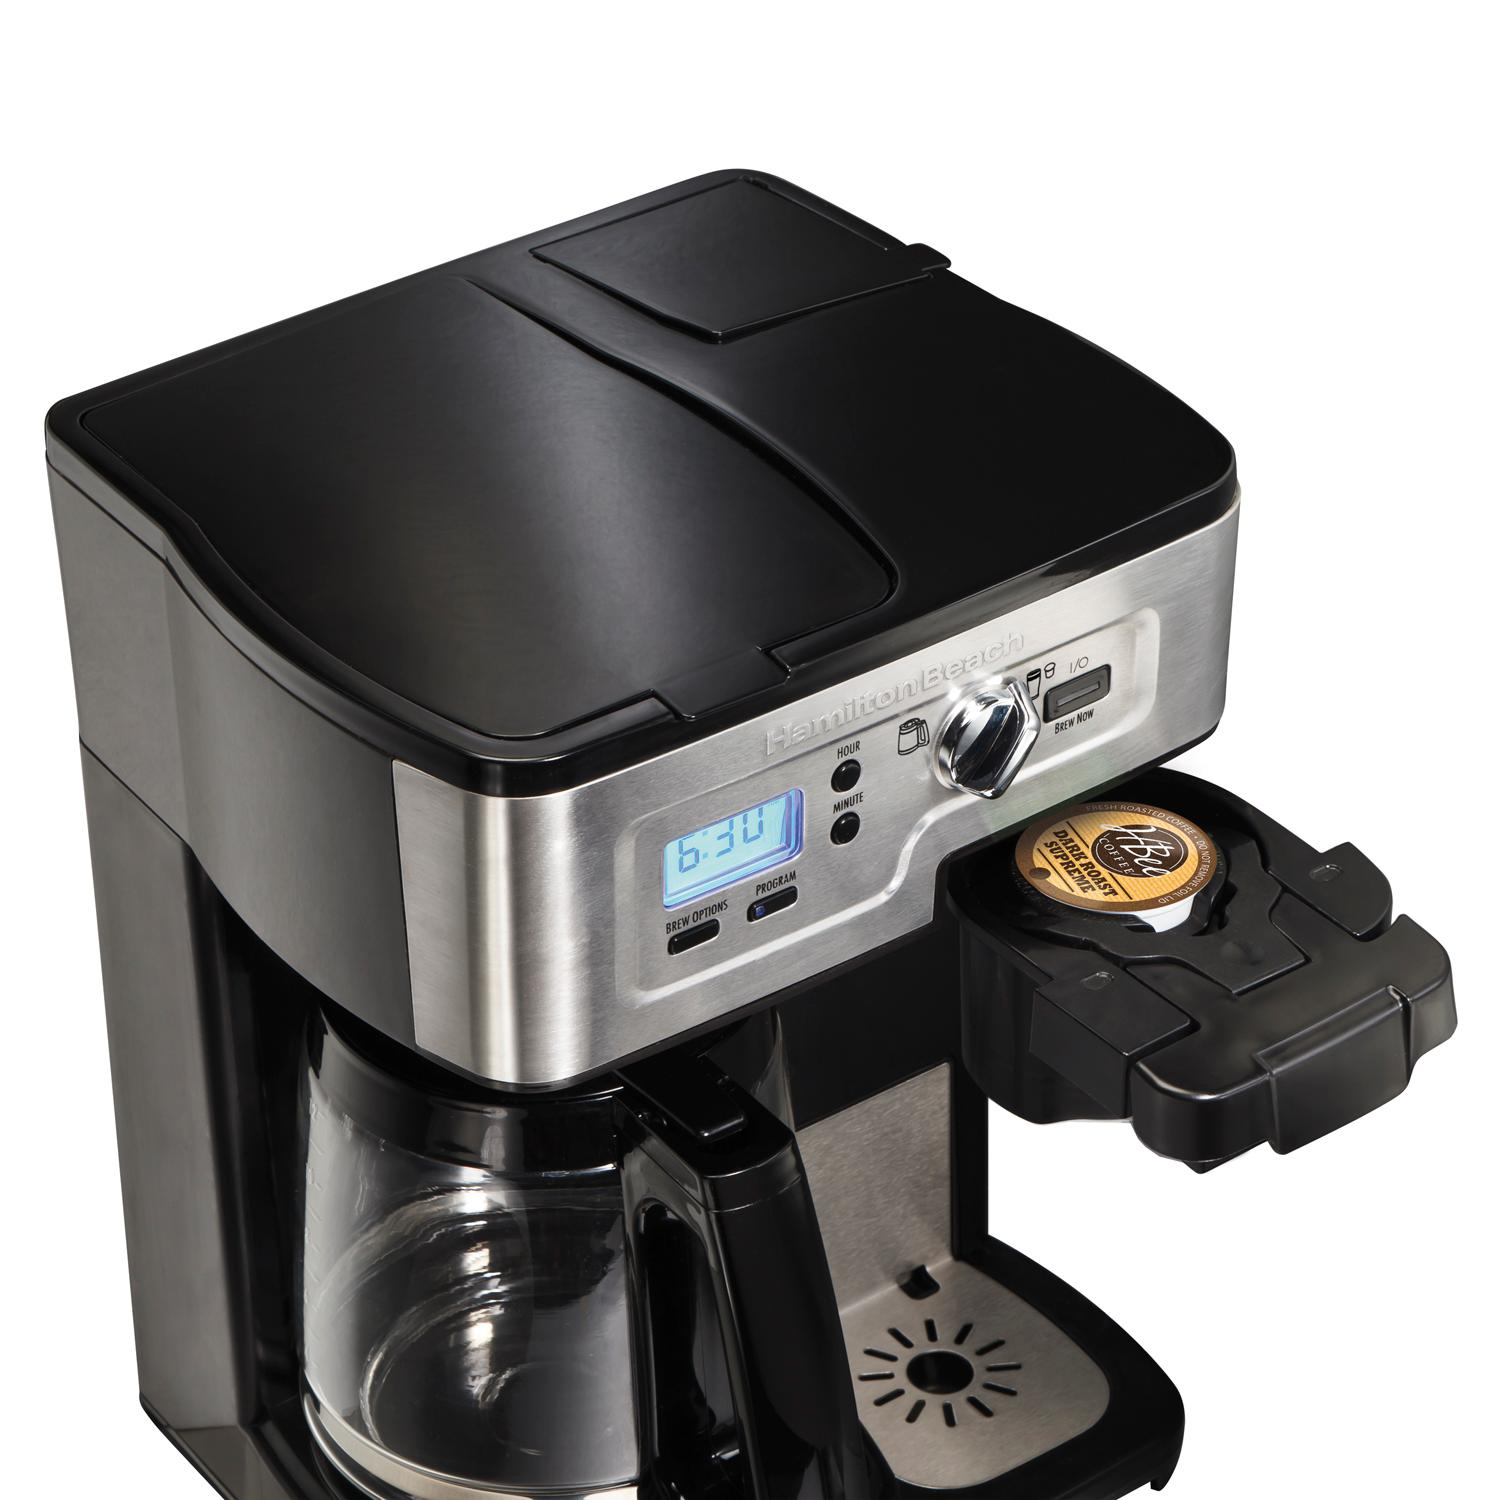 Amazon.com: Hamilton Beach Single Serve Coffee Brewer and ...